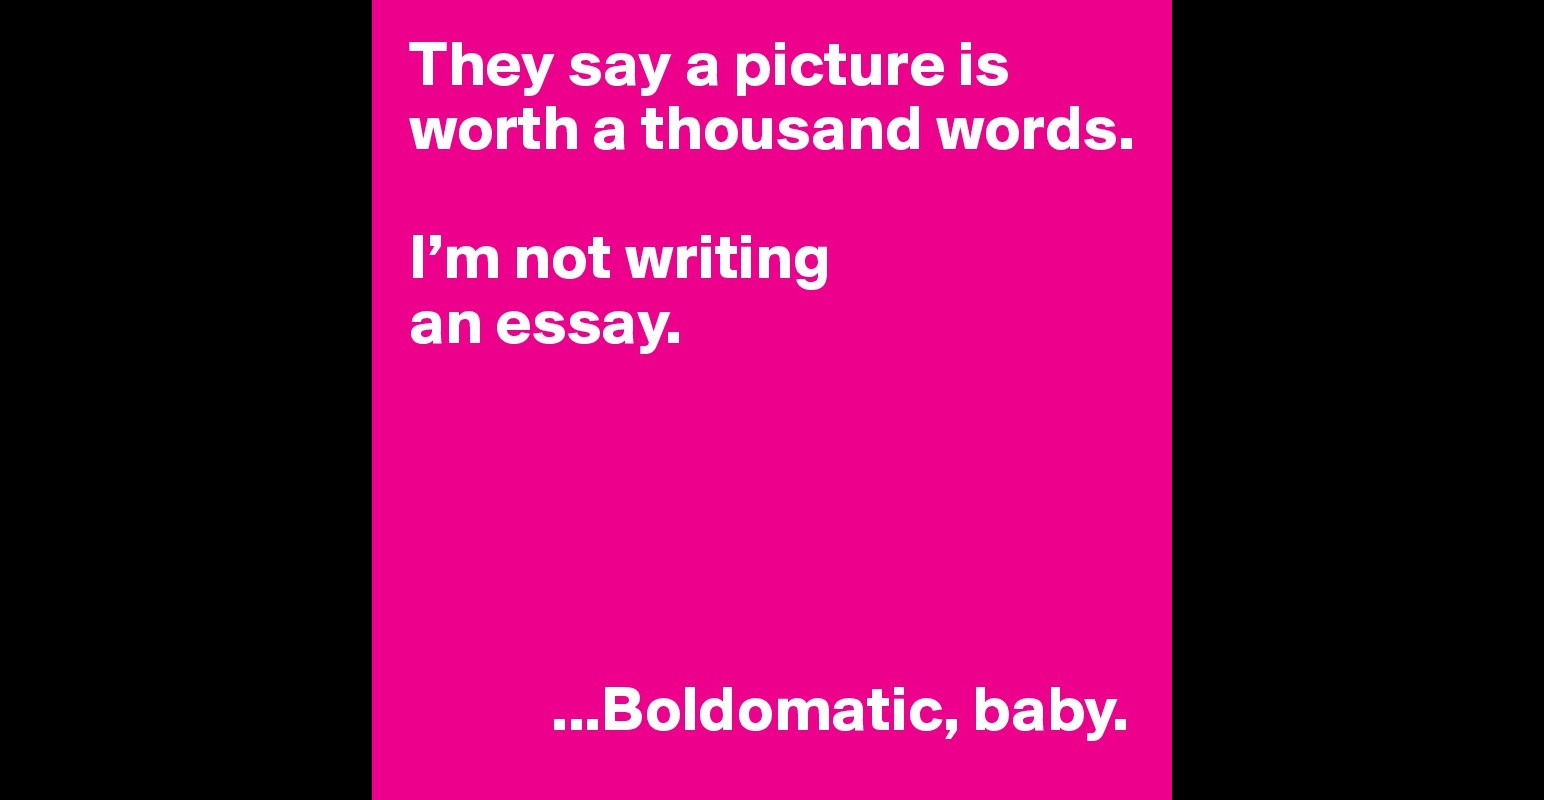 they say a picture is worth a thousand words i m not writing an they say a picture is worth a thousand words i m not writing an essay baby post by pushingvision on boldomatic